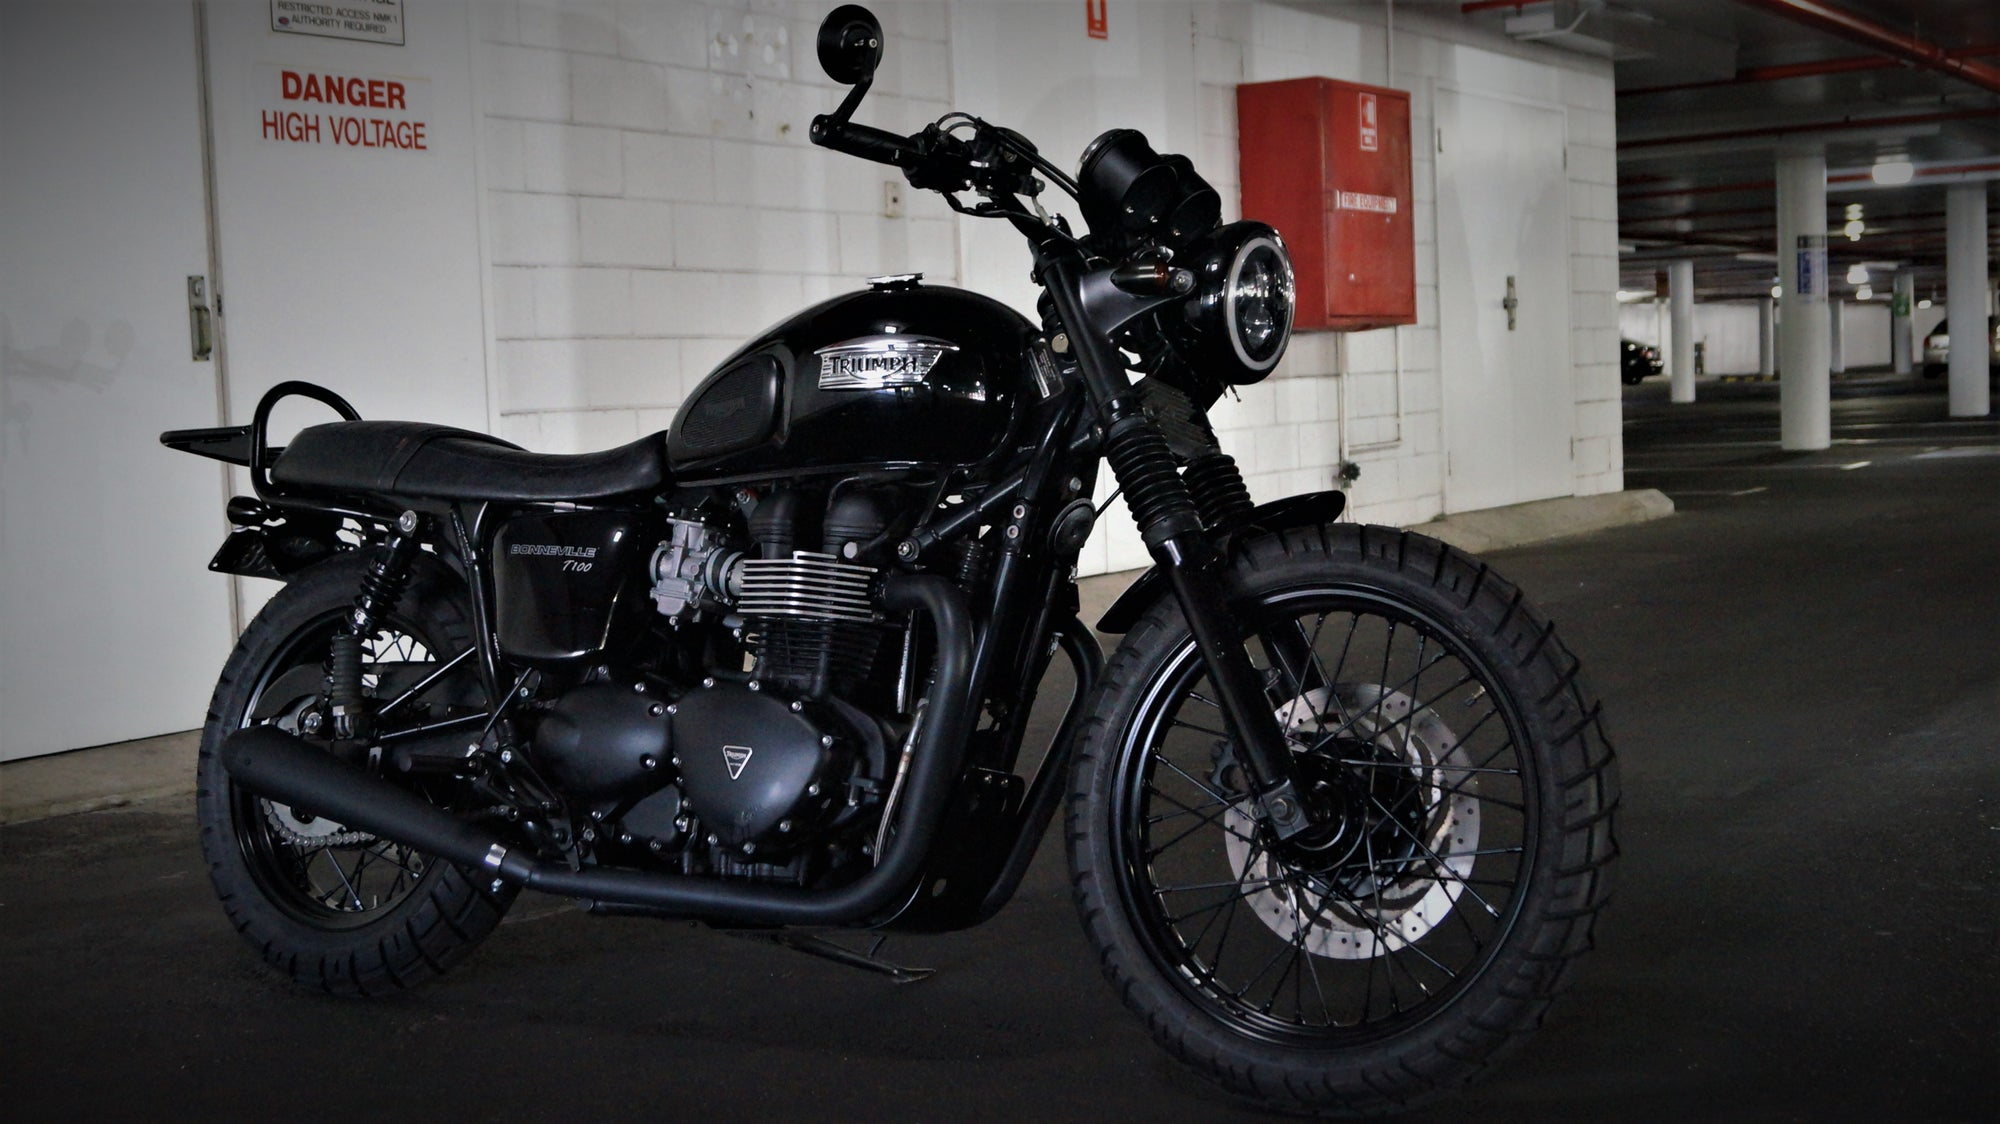 Blacked out Triumph Bonneville